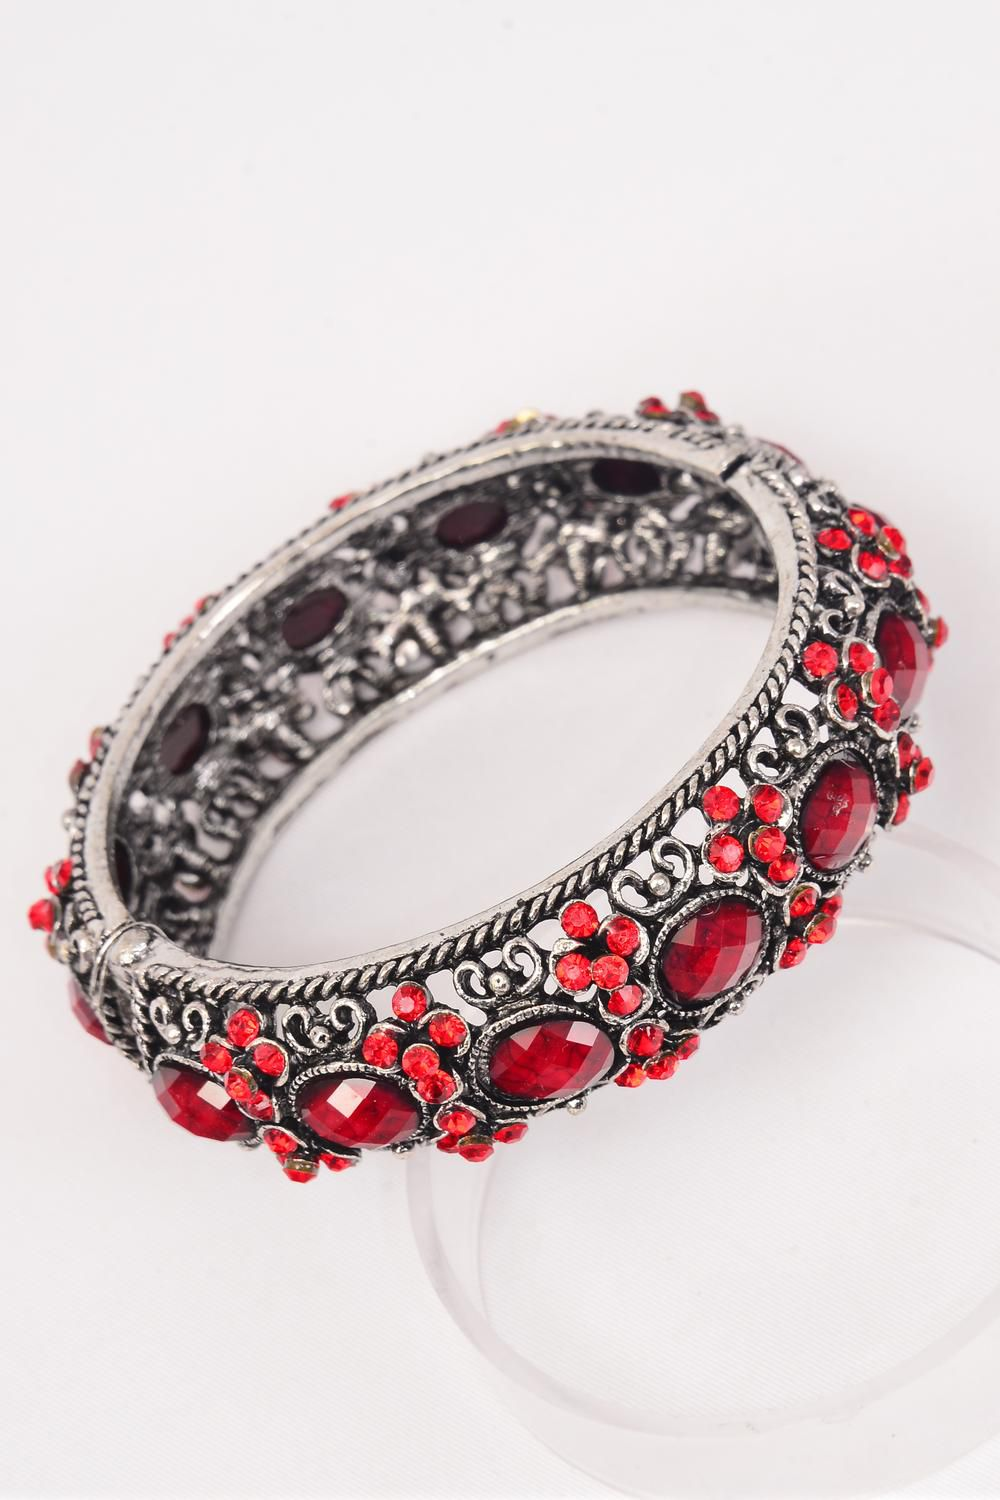 "Bangle Hinge Antique Silver Red Poly Stones & Rhinestones All Around mix/PC **Red** Hinge,Face Size-1"" Wide,Wrist Size-2""x 2.5"" Dia Wide,Hang Tag & OPP bag & UPC Code -"